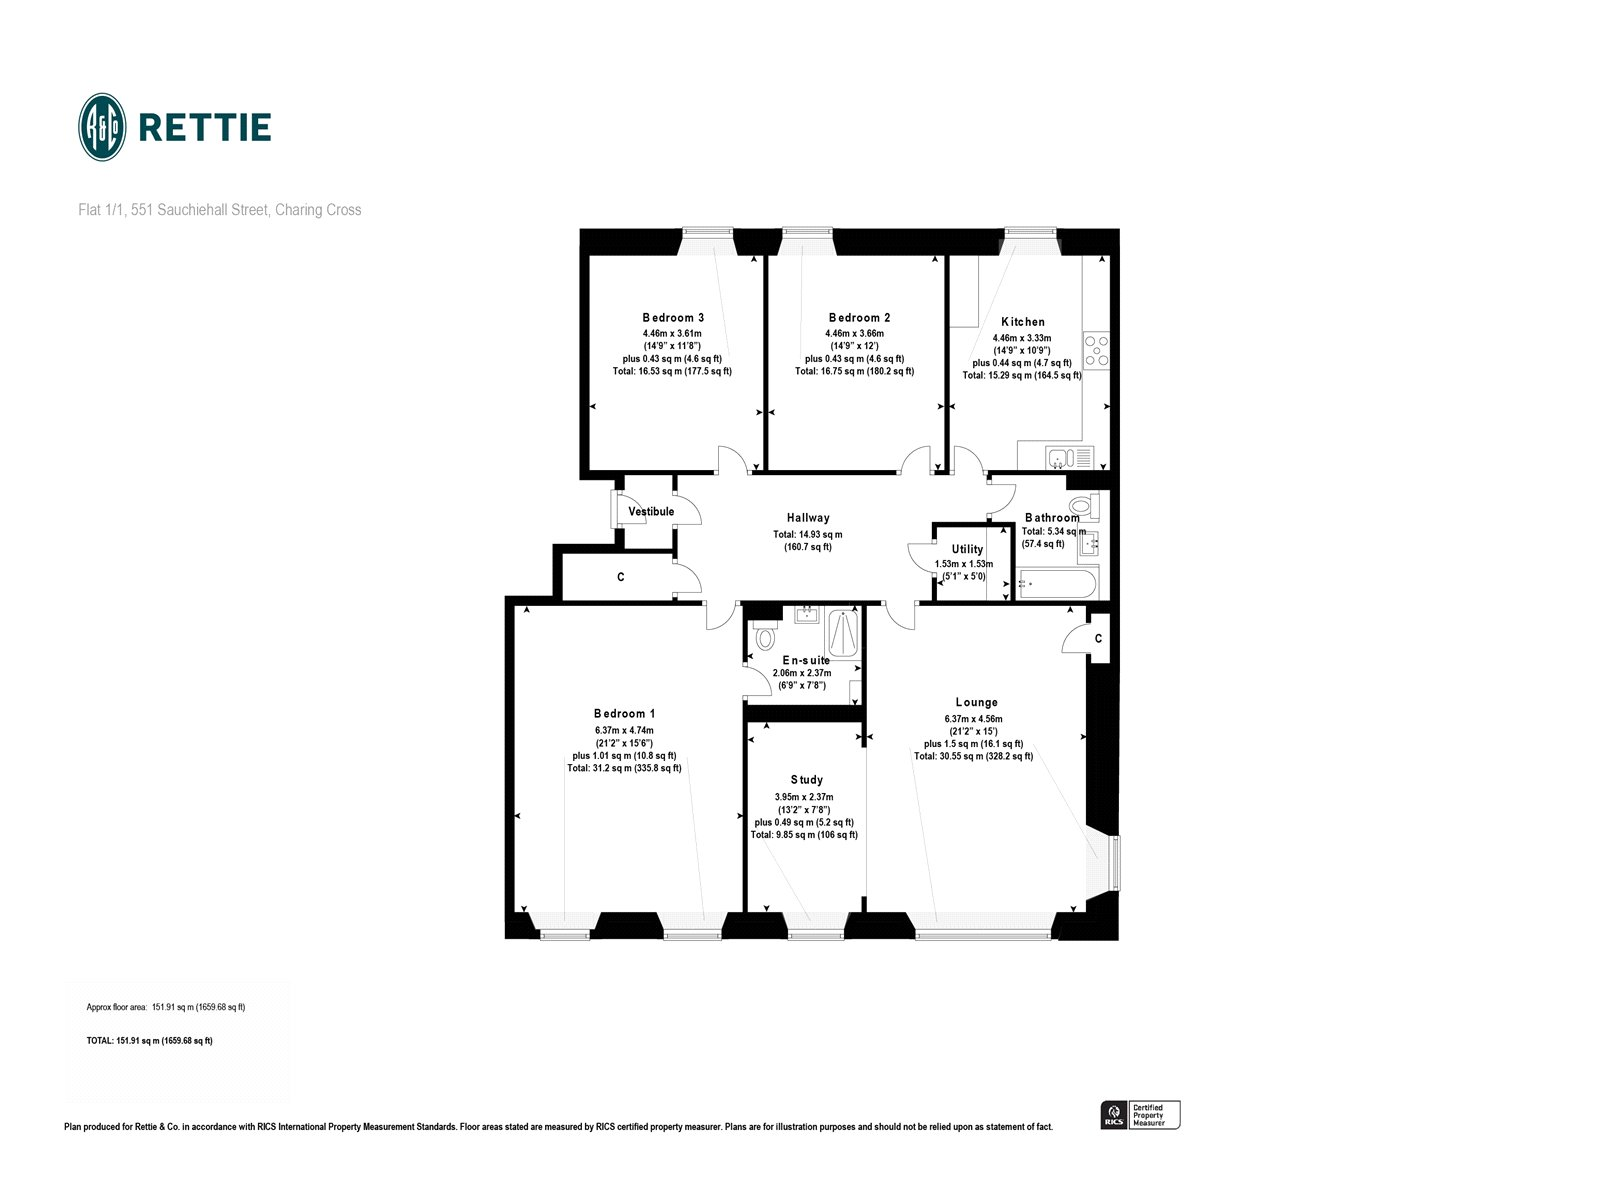 Floorplans for Sauchiehall Street, Park, Glasgow, G3